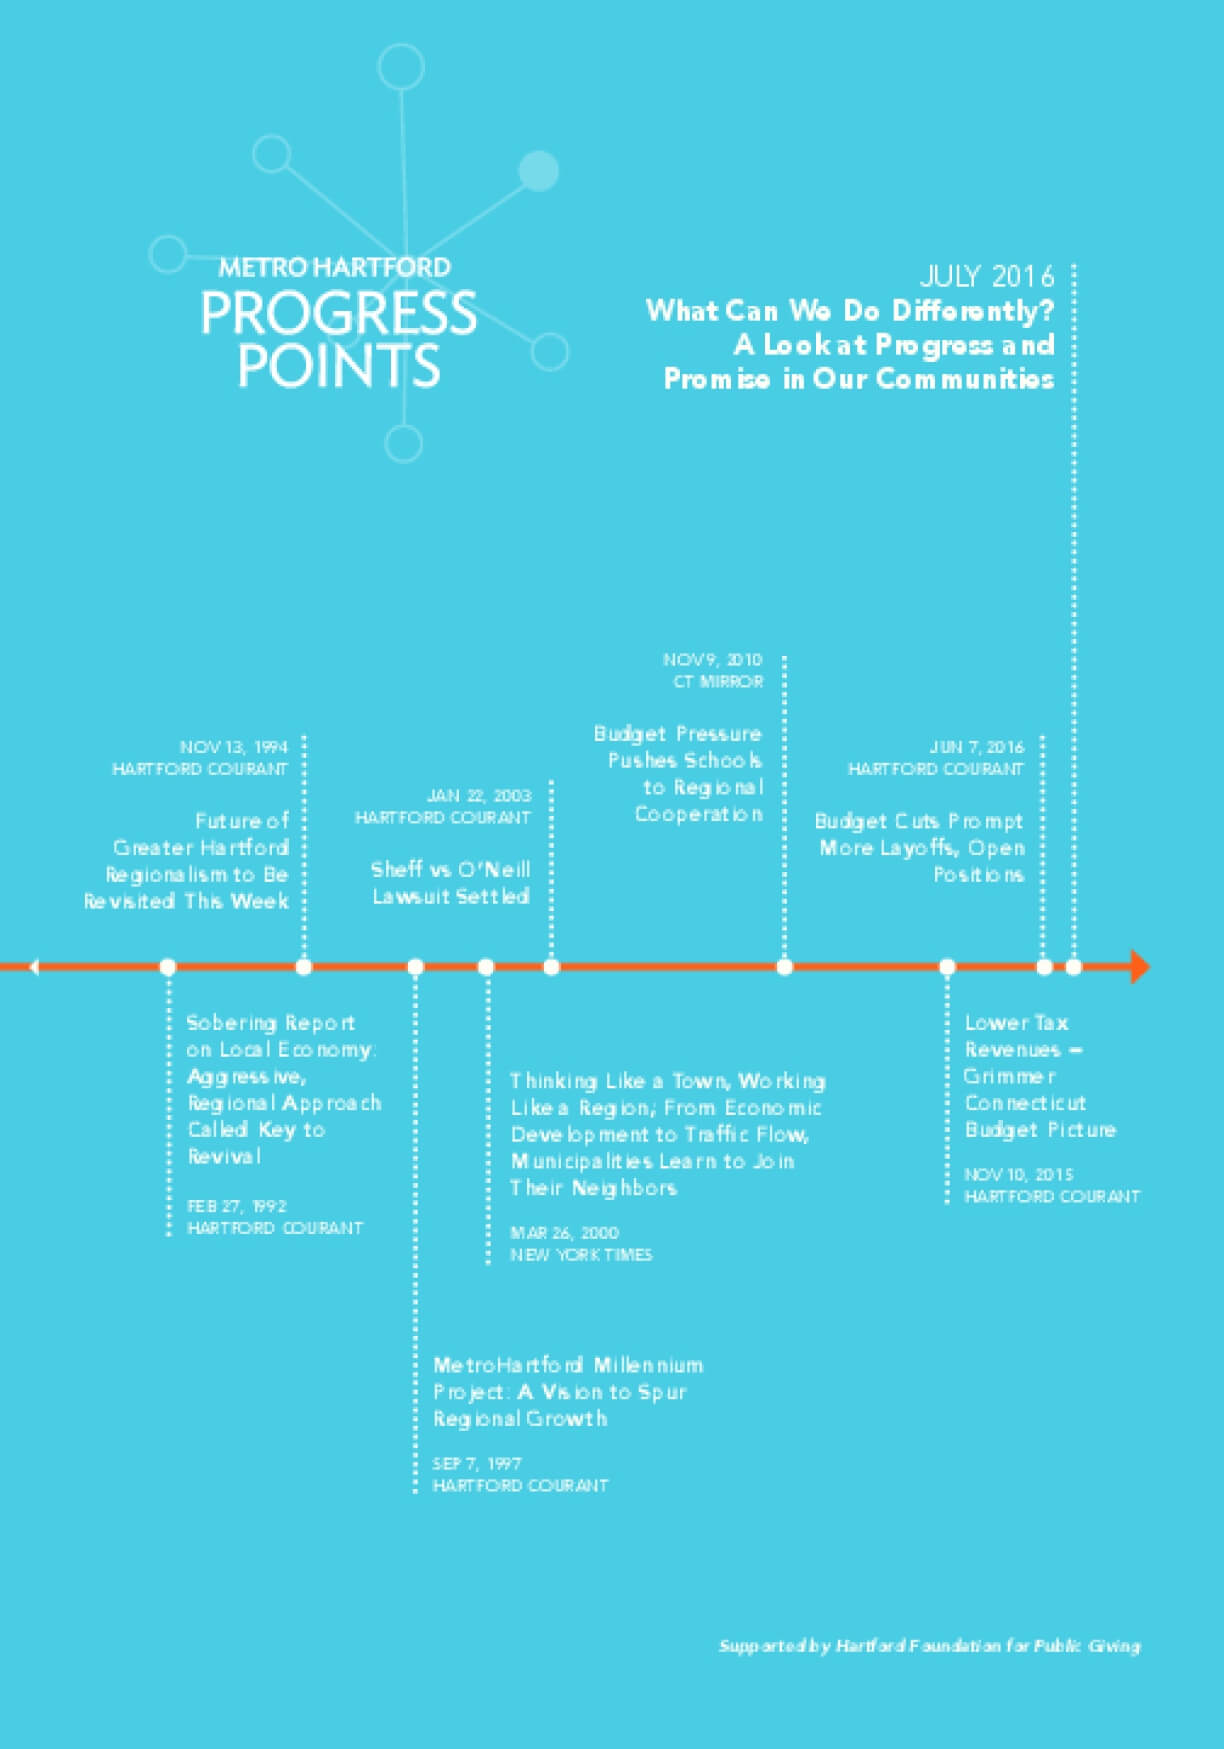 Metro Hartford Progress Points: What Can We Do Differently? A Look at Progress and Promise in Our Communities